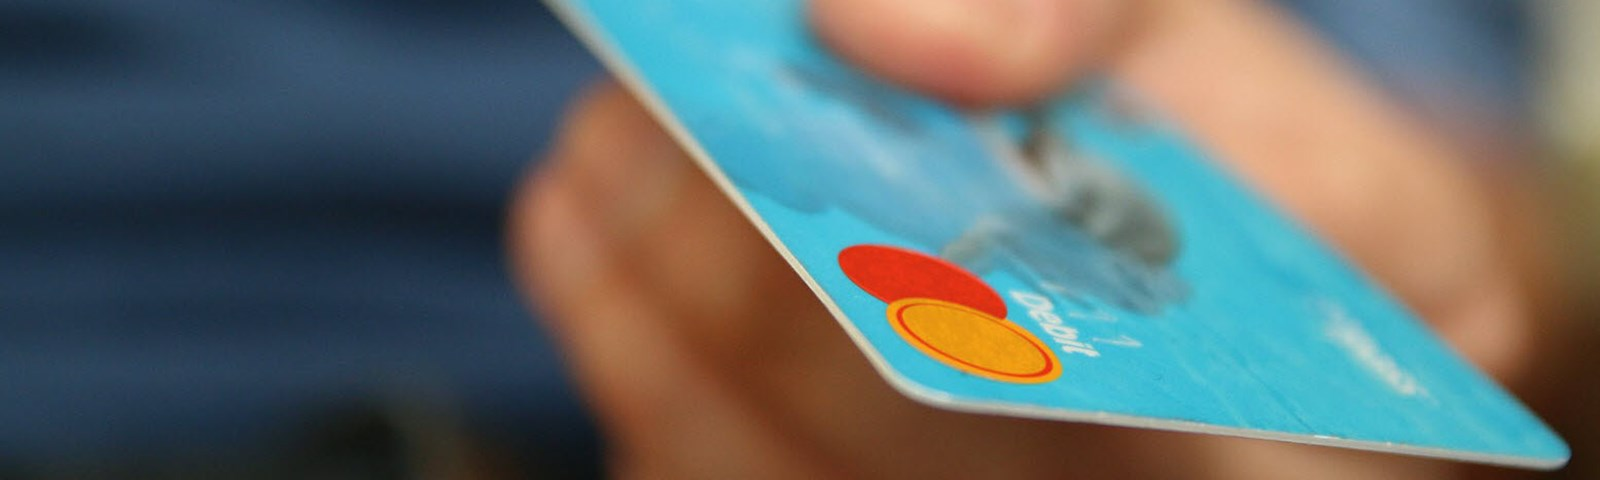 Credit Card Processing Software   Payment Processing   Open Systems